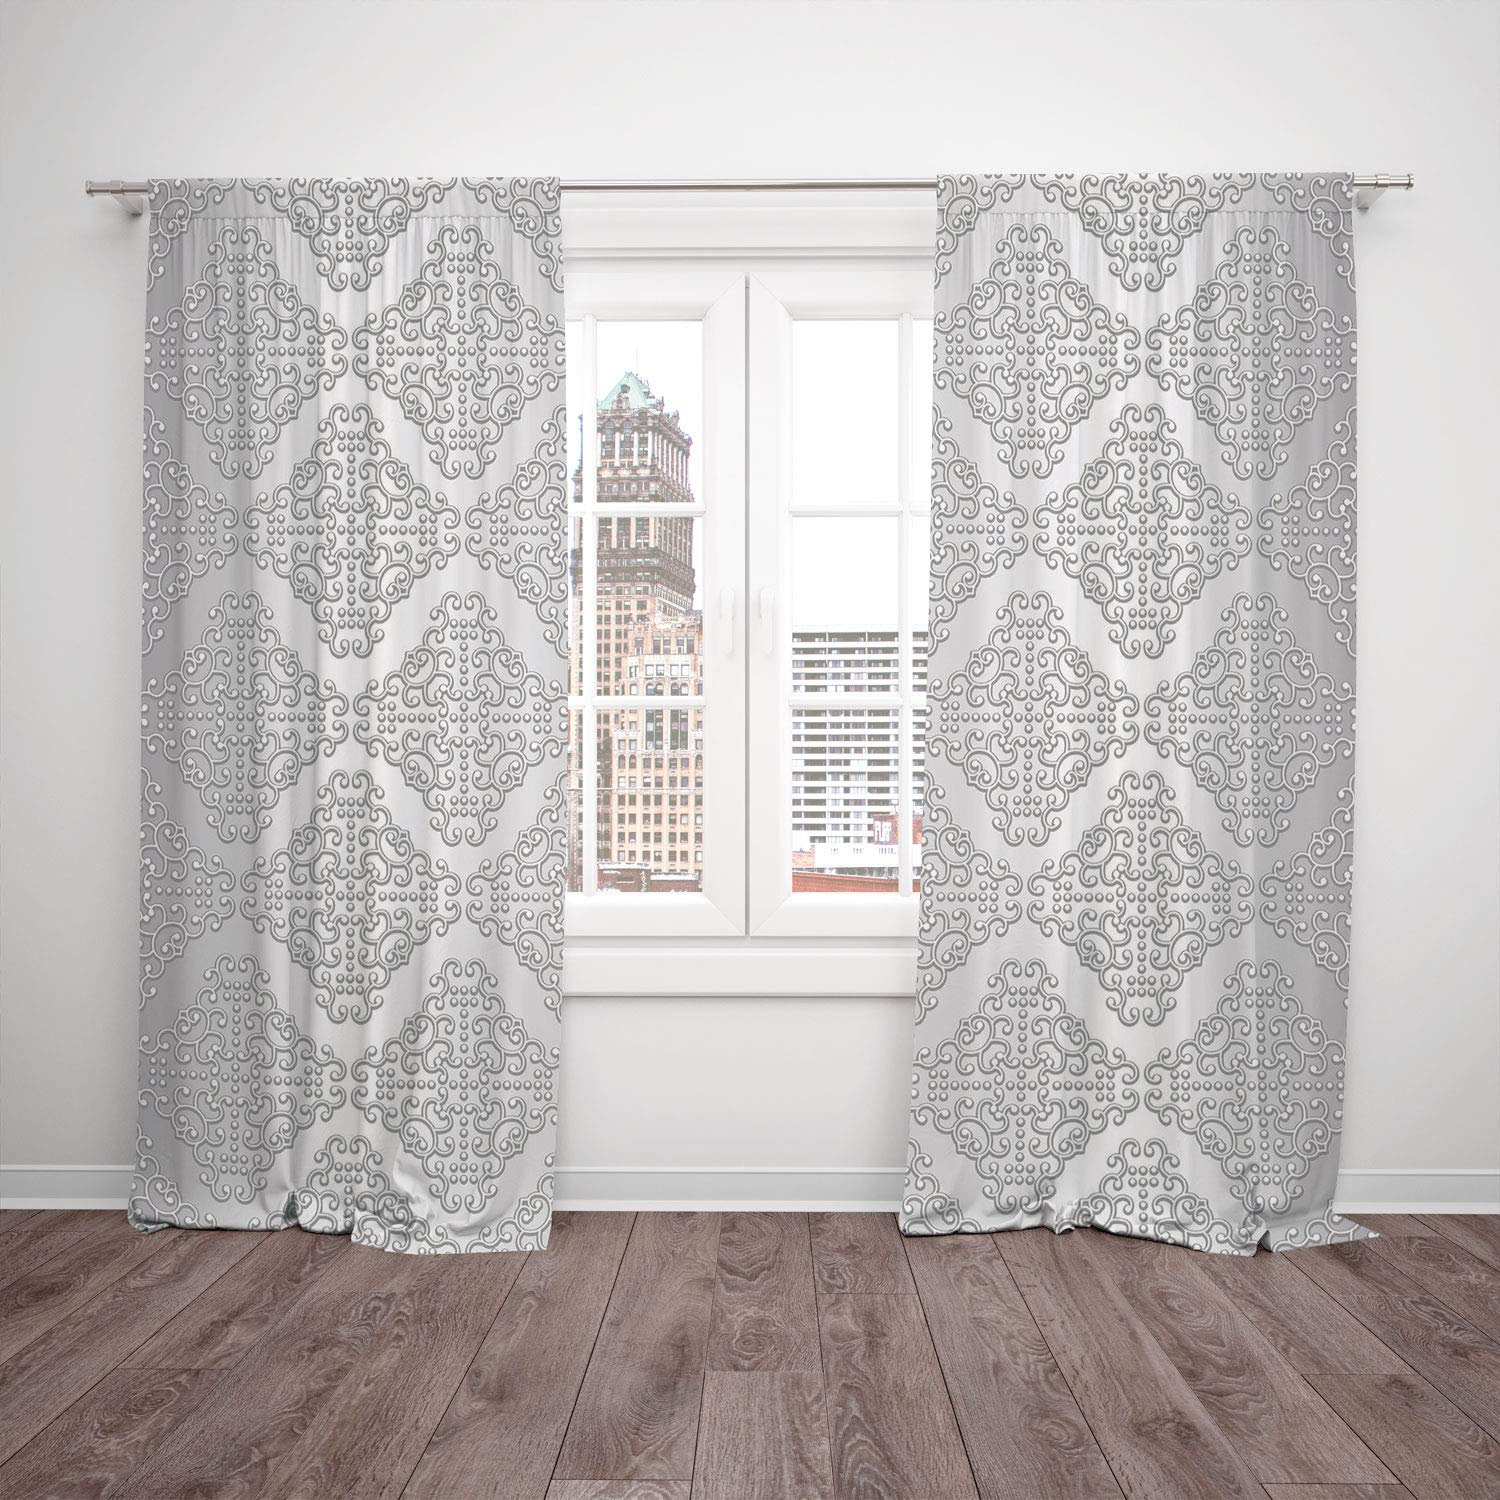 2 Panel Set Window Drapes Kitchen Curtains,Silver Damask Inspired Floral Motifs in Symmetrical Old Fashioned Design Swirls and Curls Decorative Silver White,for Bedroom Living Room Dorm Kitchen Cafe